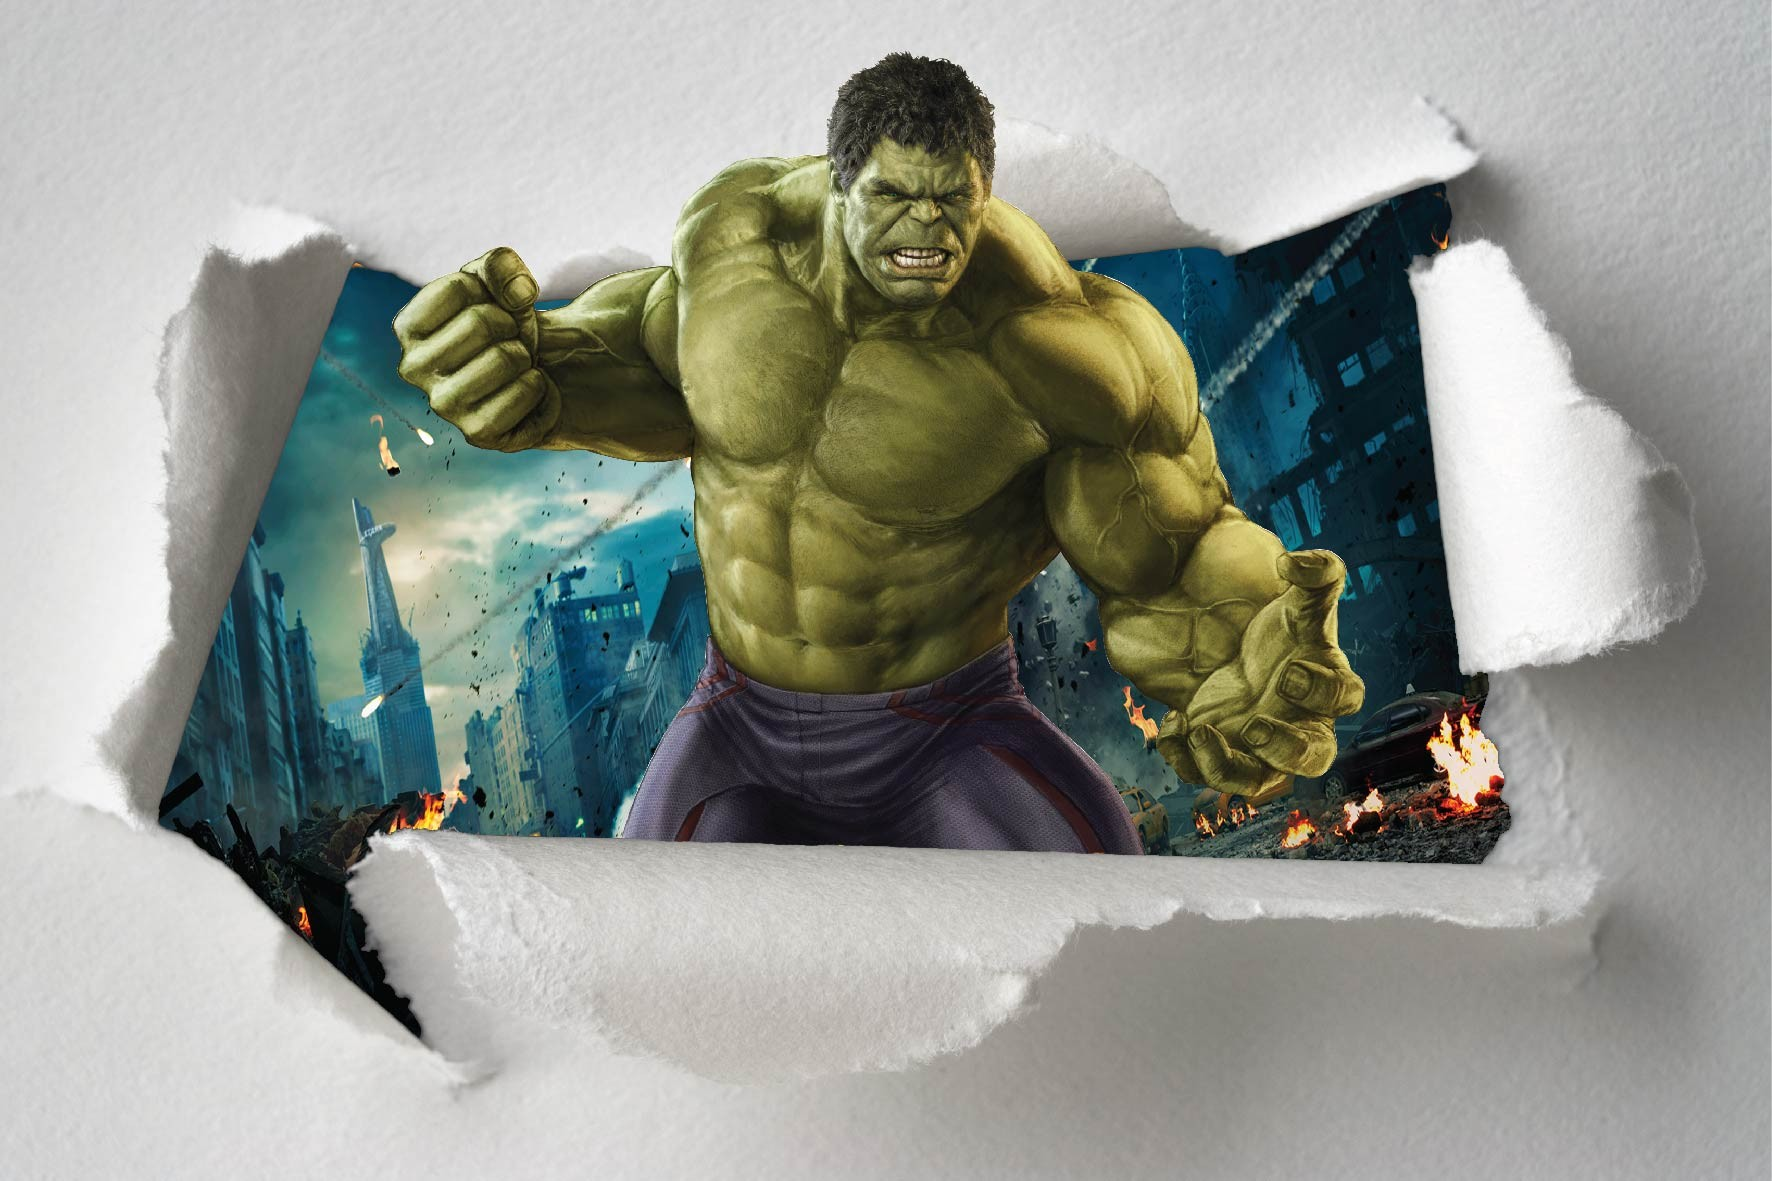 sticker mural hulk wall murals. Black Bedroom Furniture Sets. Home Design Ideas